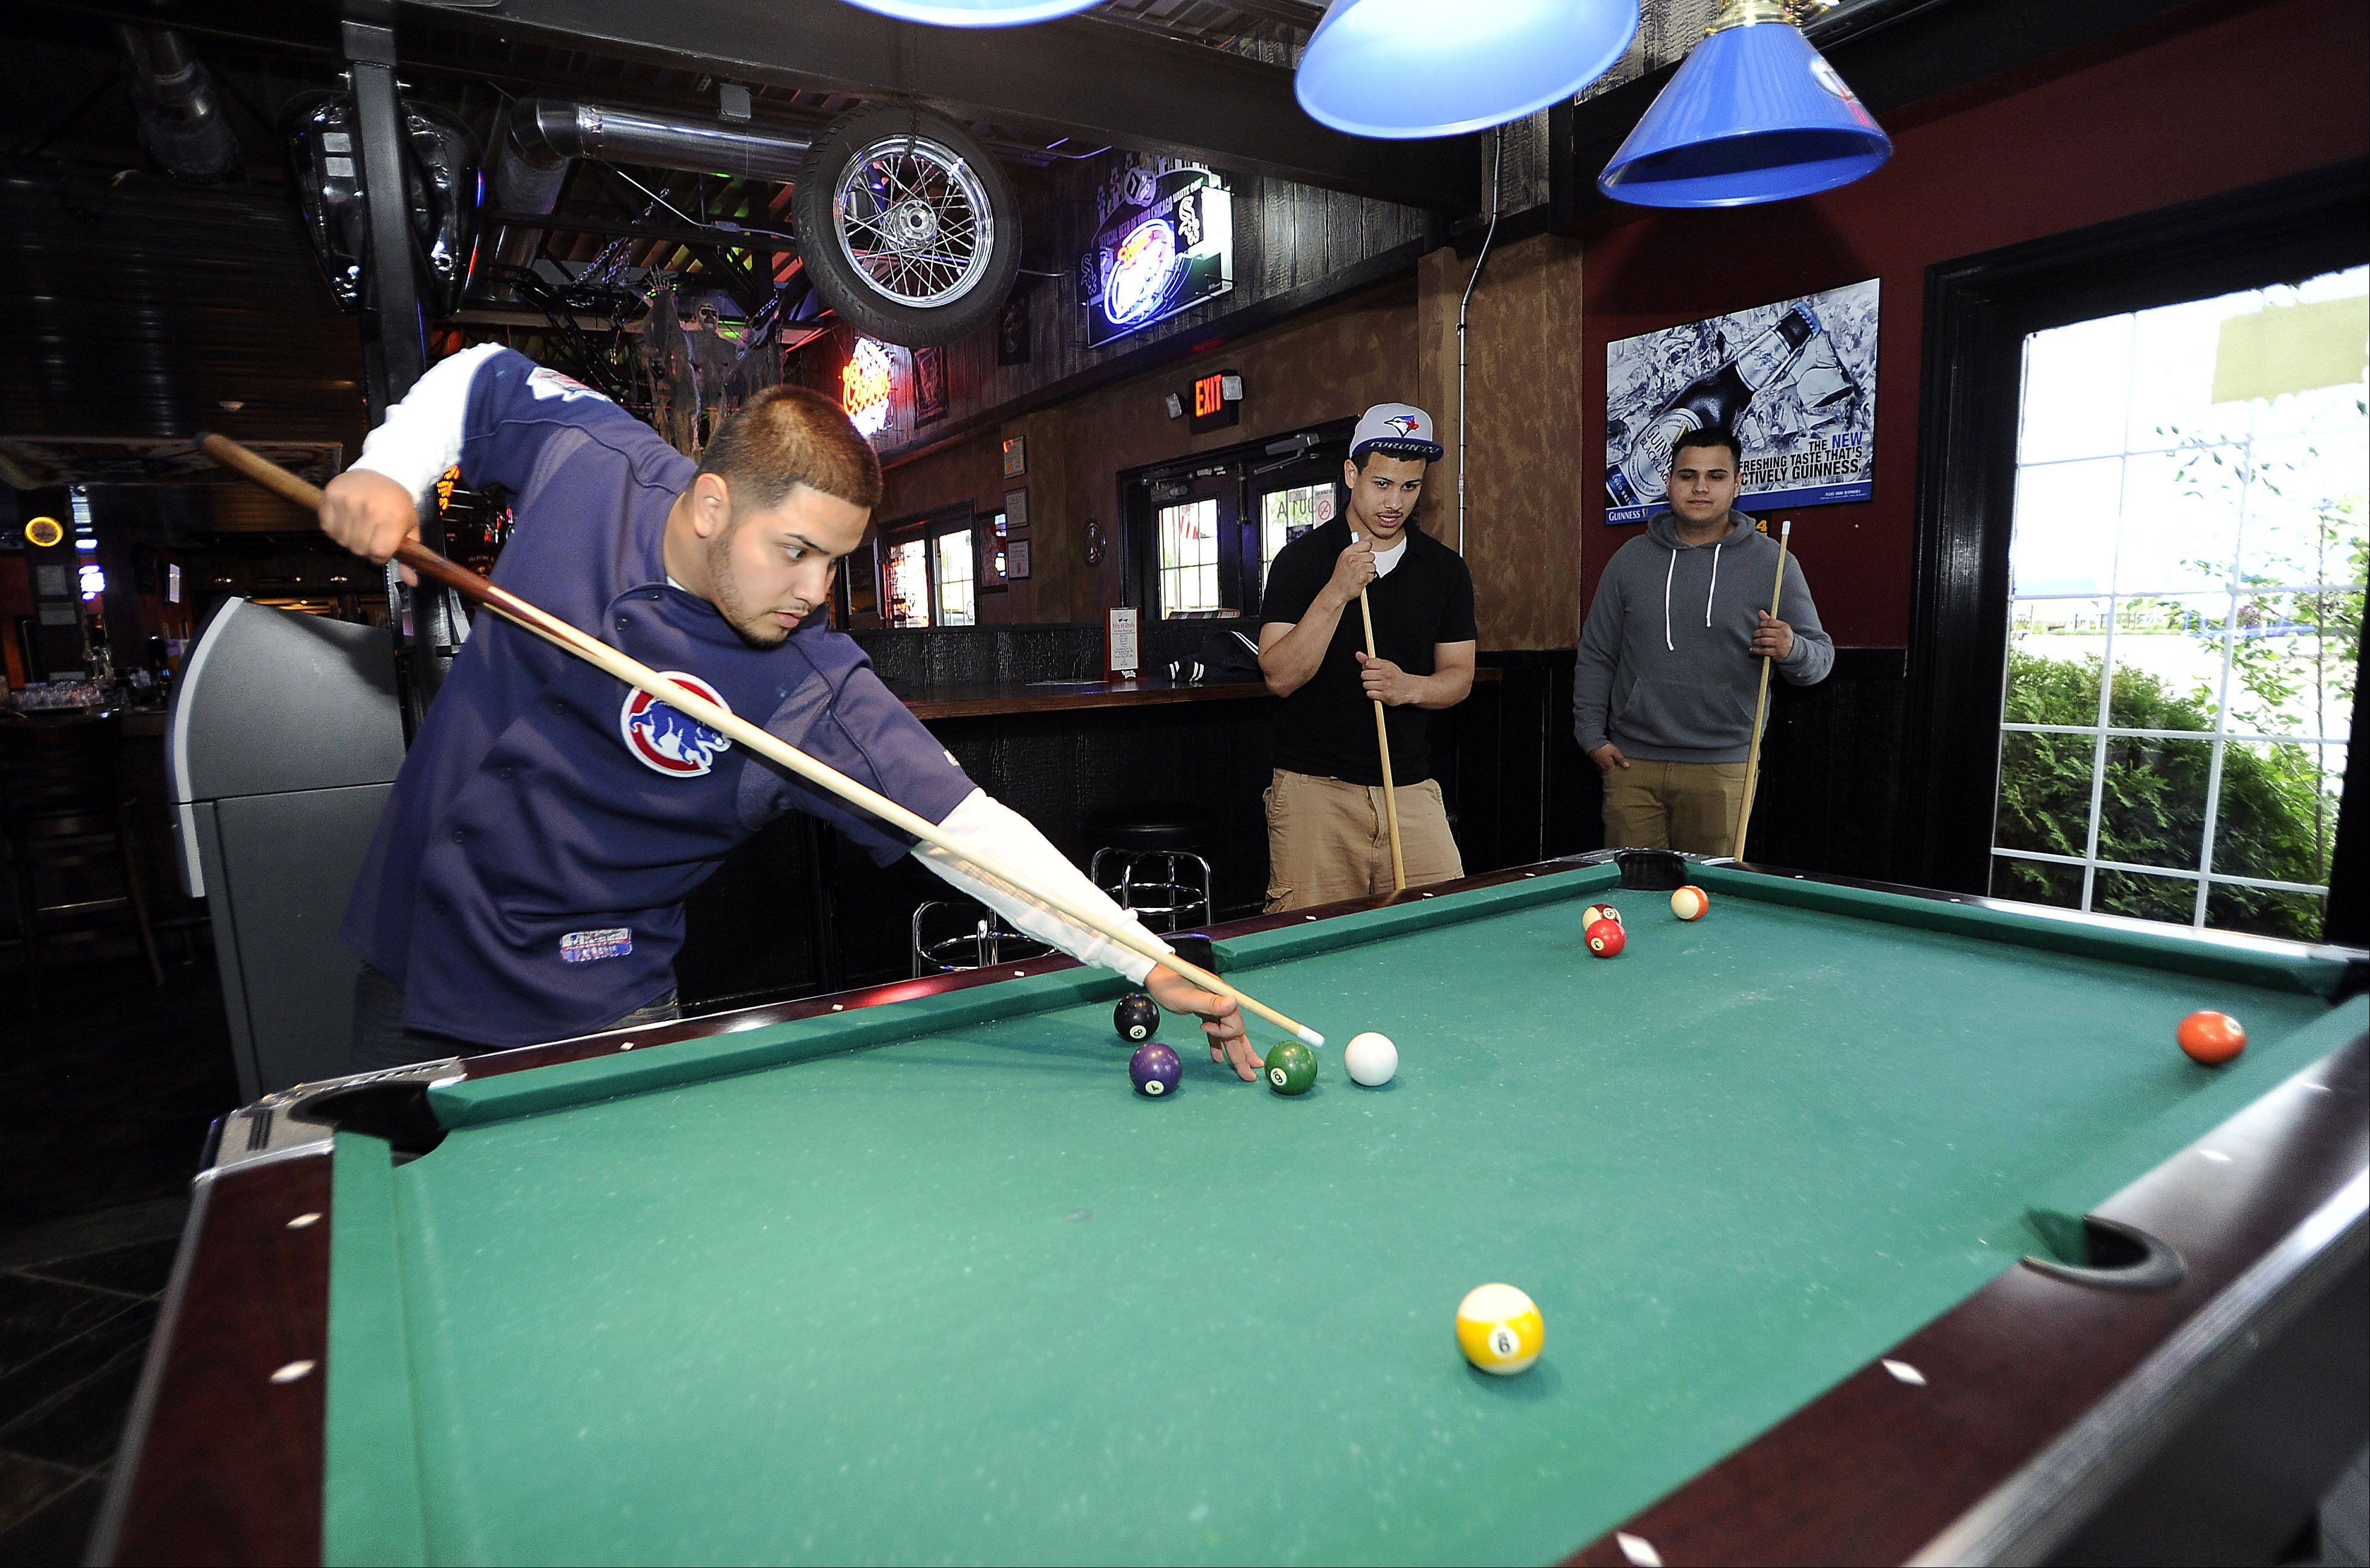 Ramon Hernandez plays pool with friends at Alley 64 in Palatine.